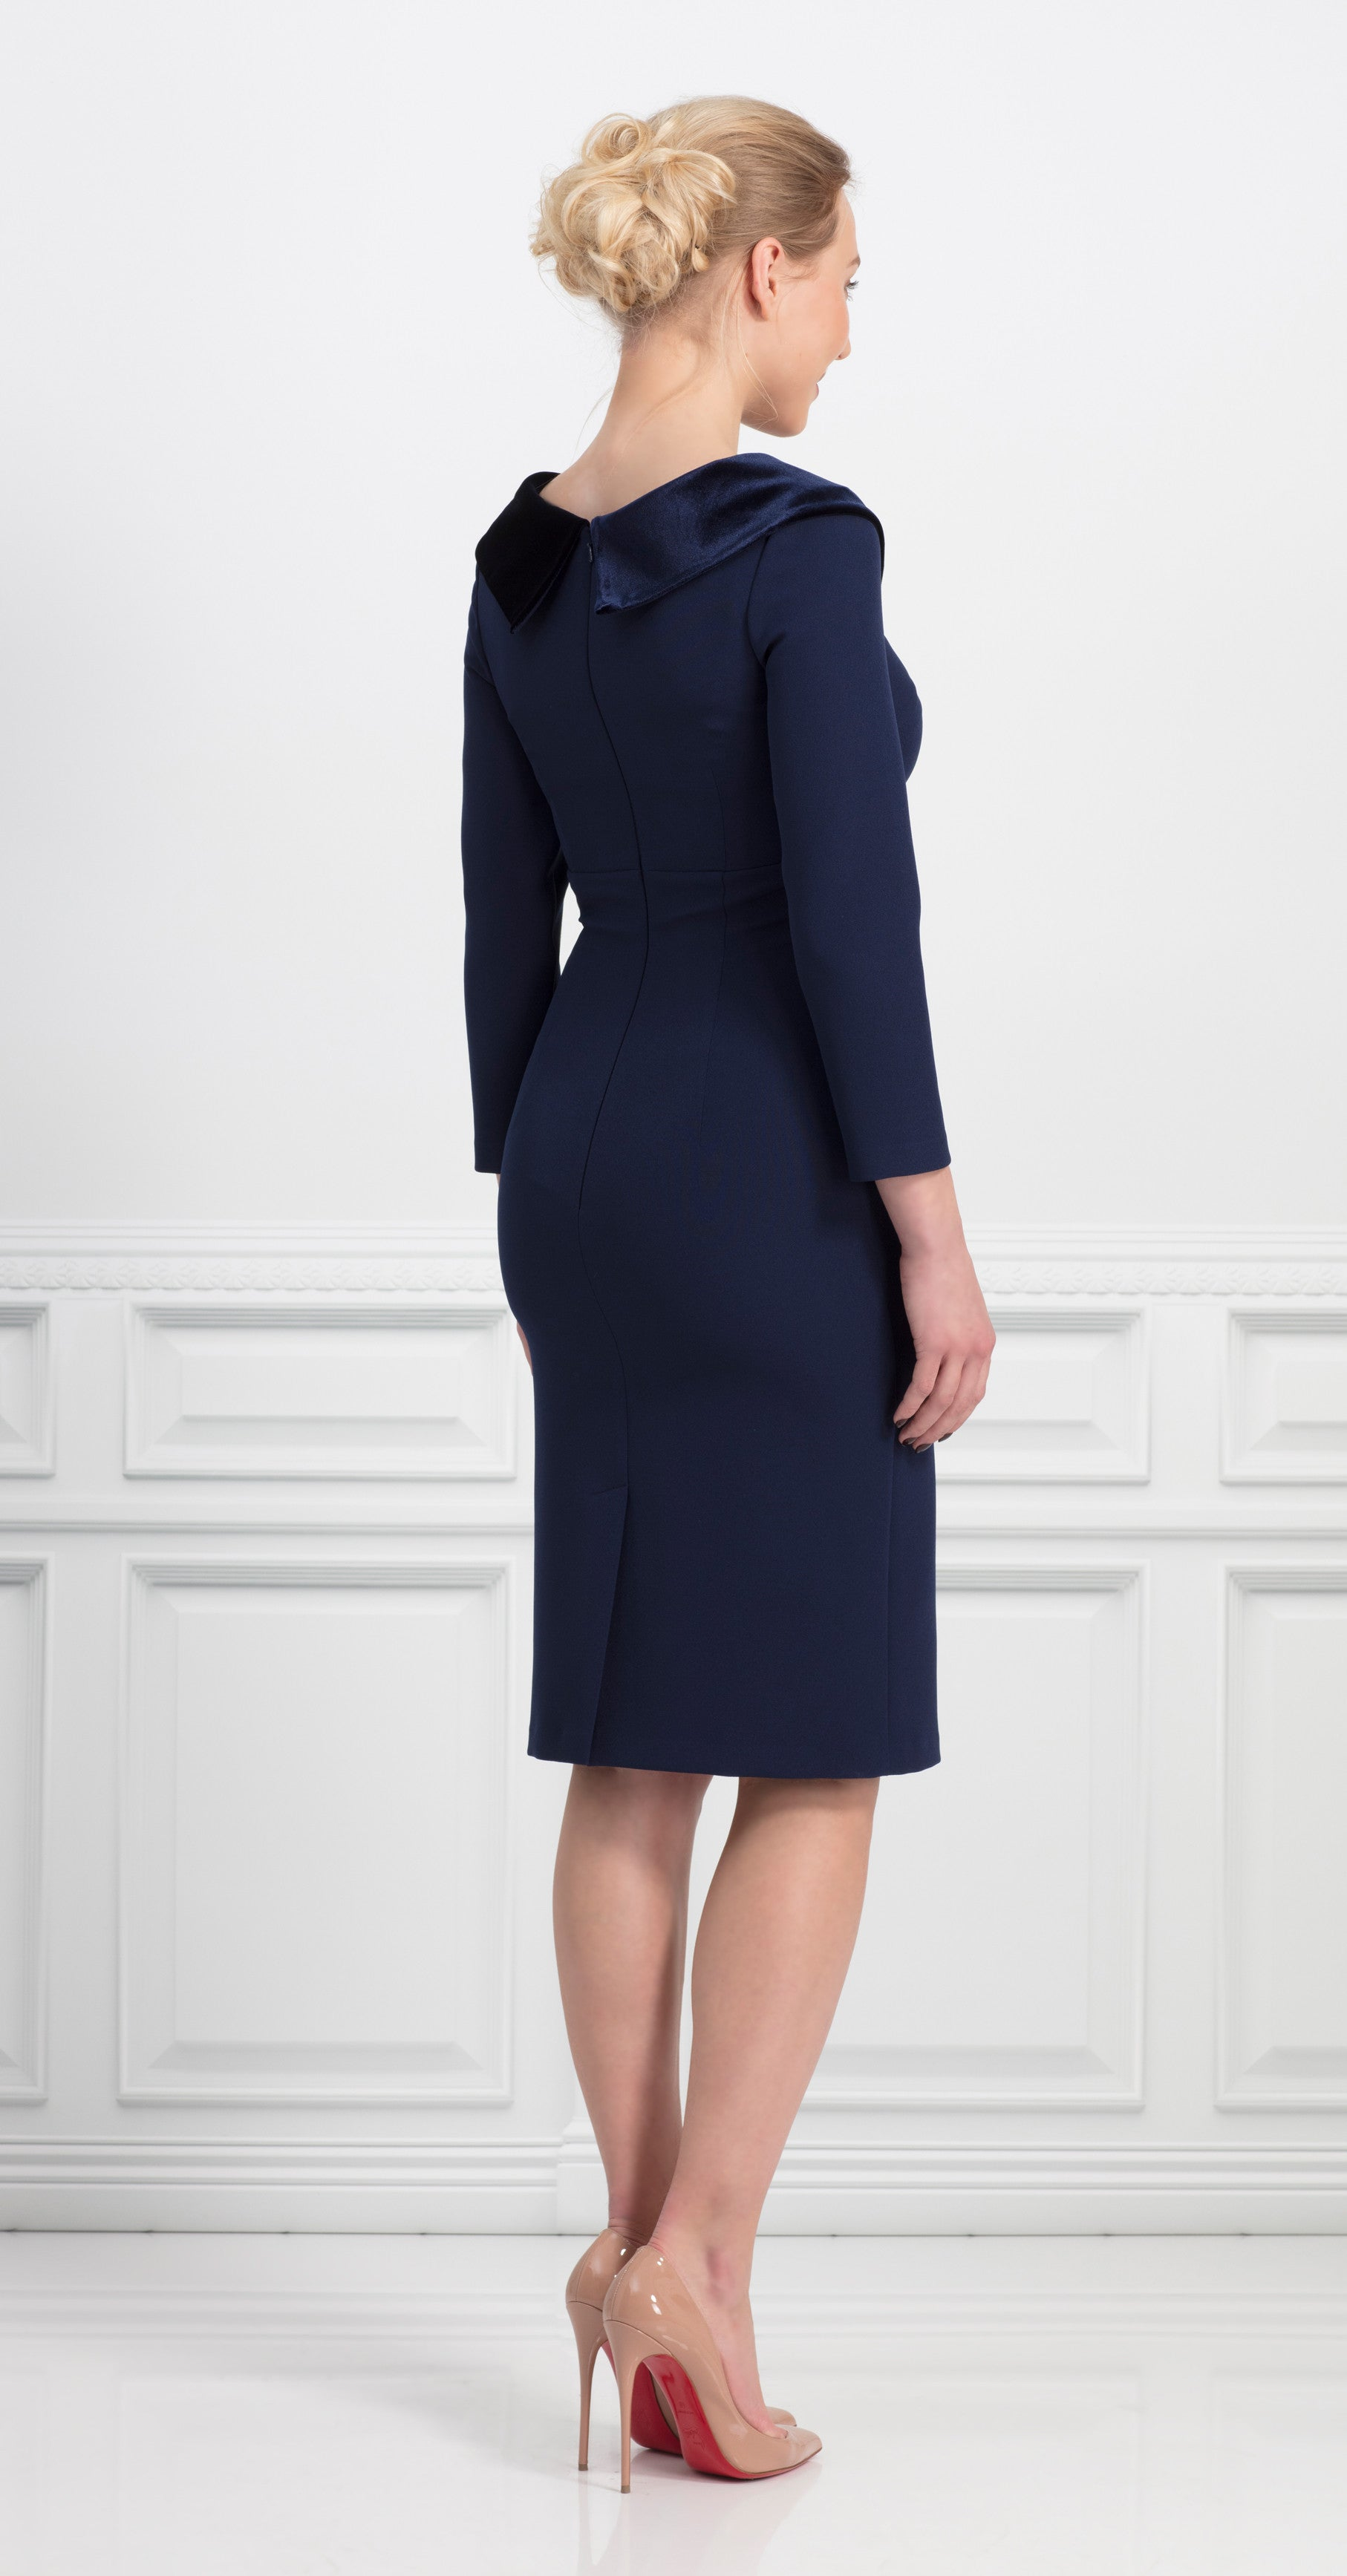 ROSWELL DRESS NAVY